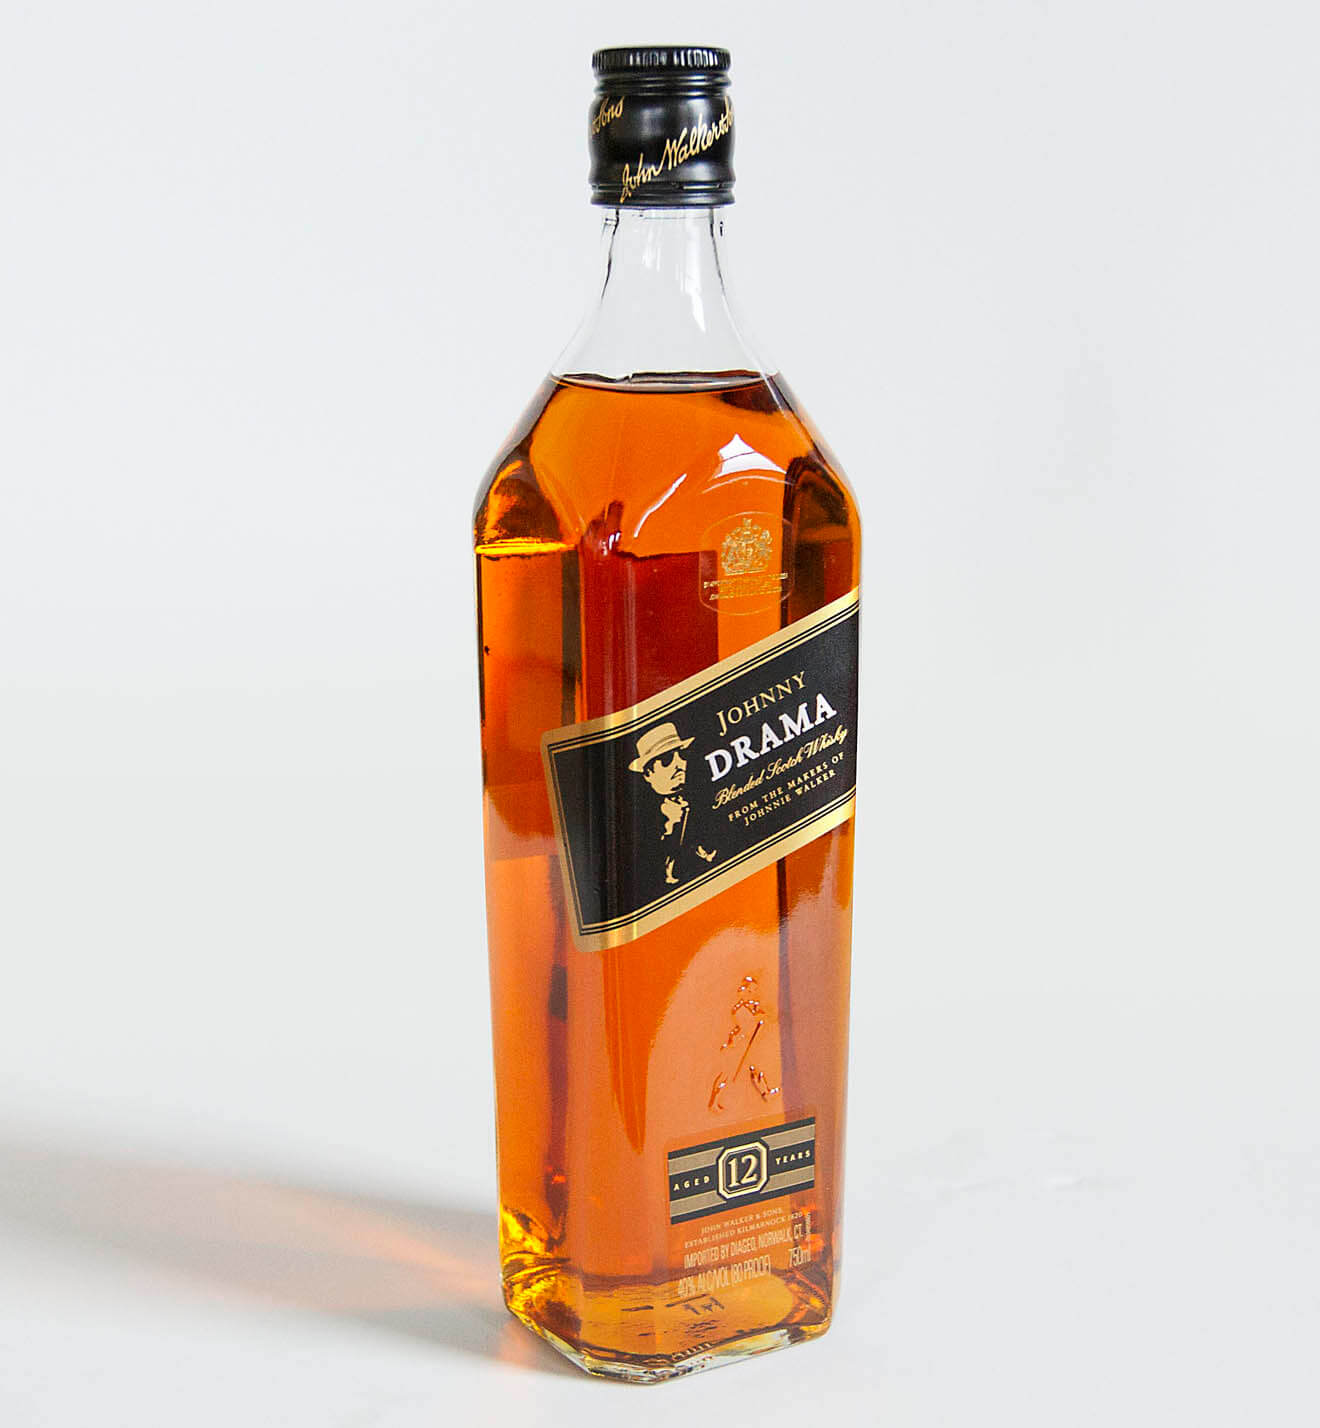 Johnny Drama Blend Johnnie Walker Scotch Whiskey